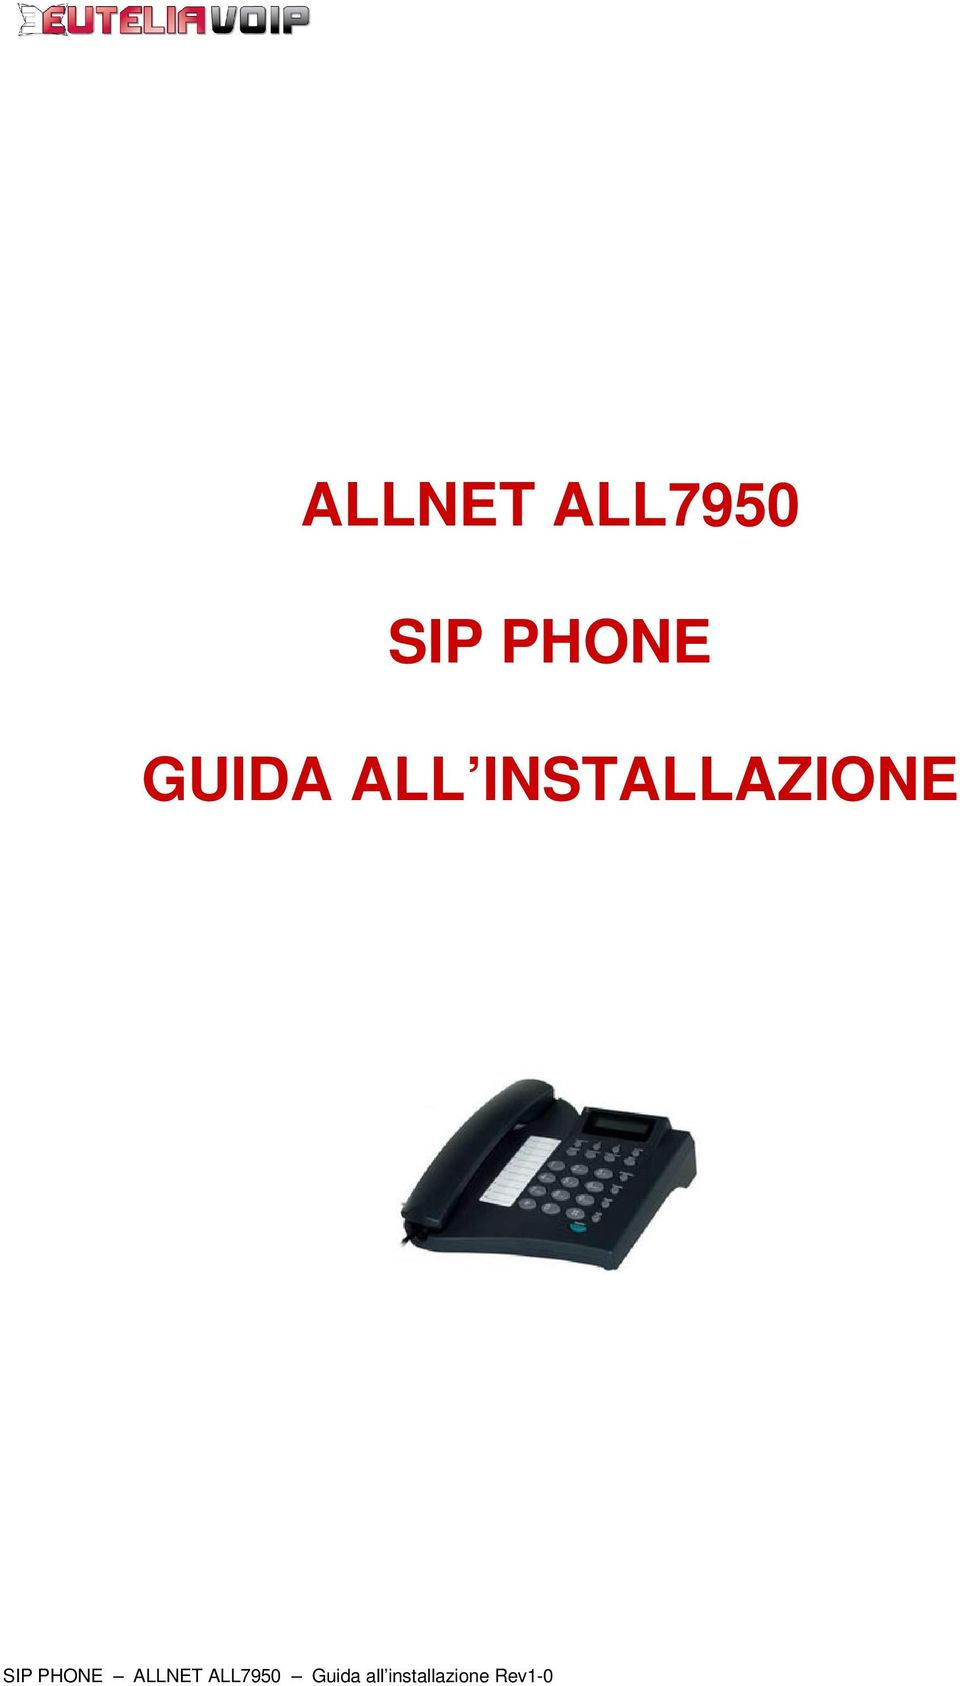 SIP PHONE ALLNET ALL7950